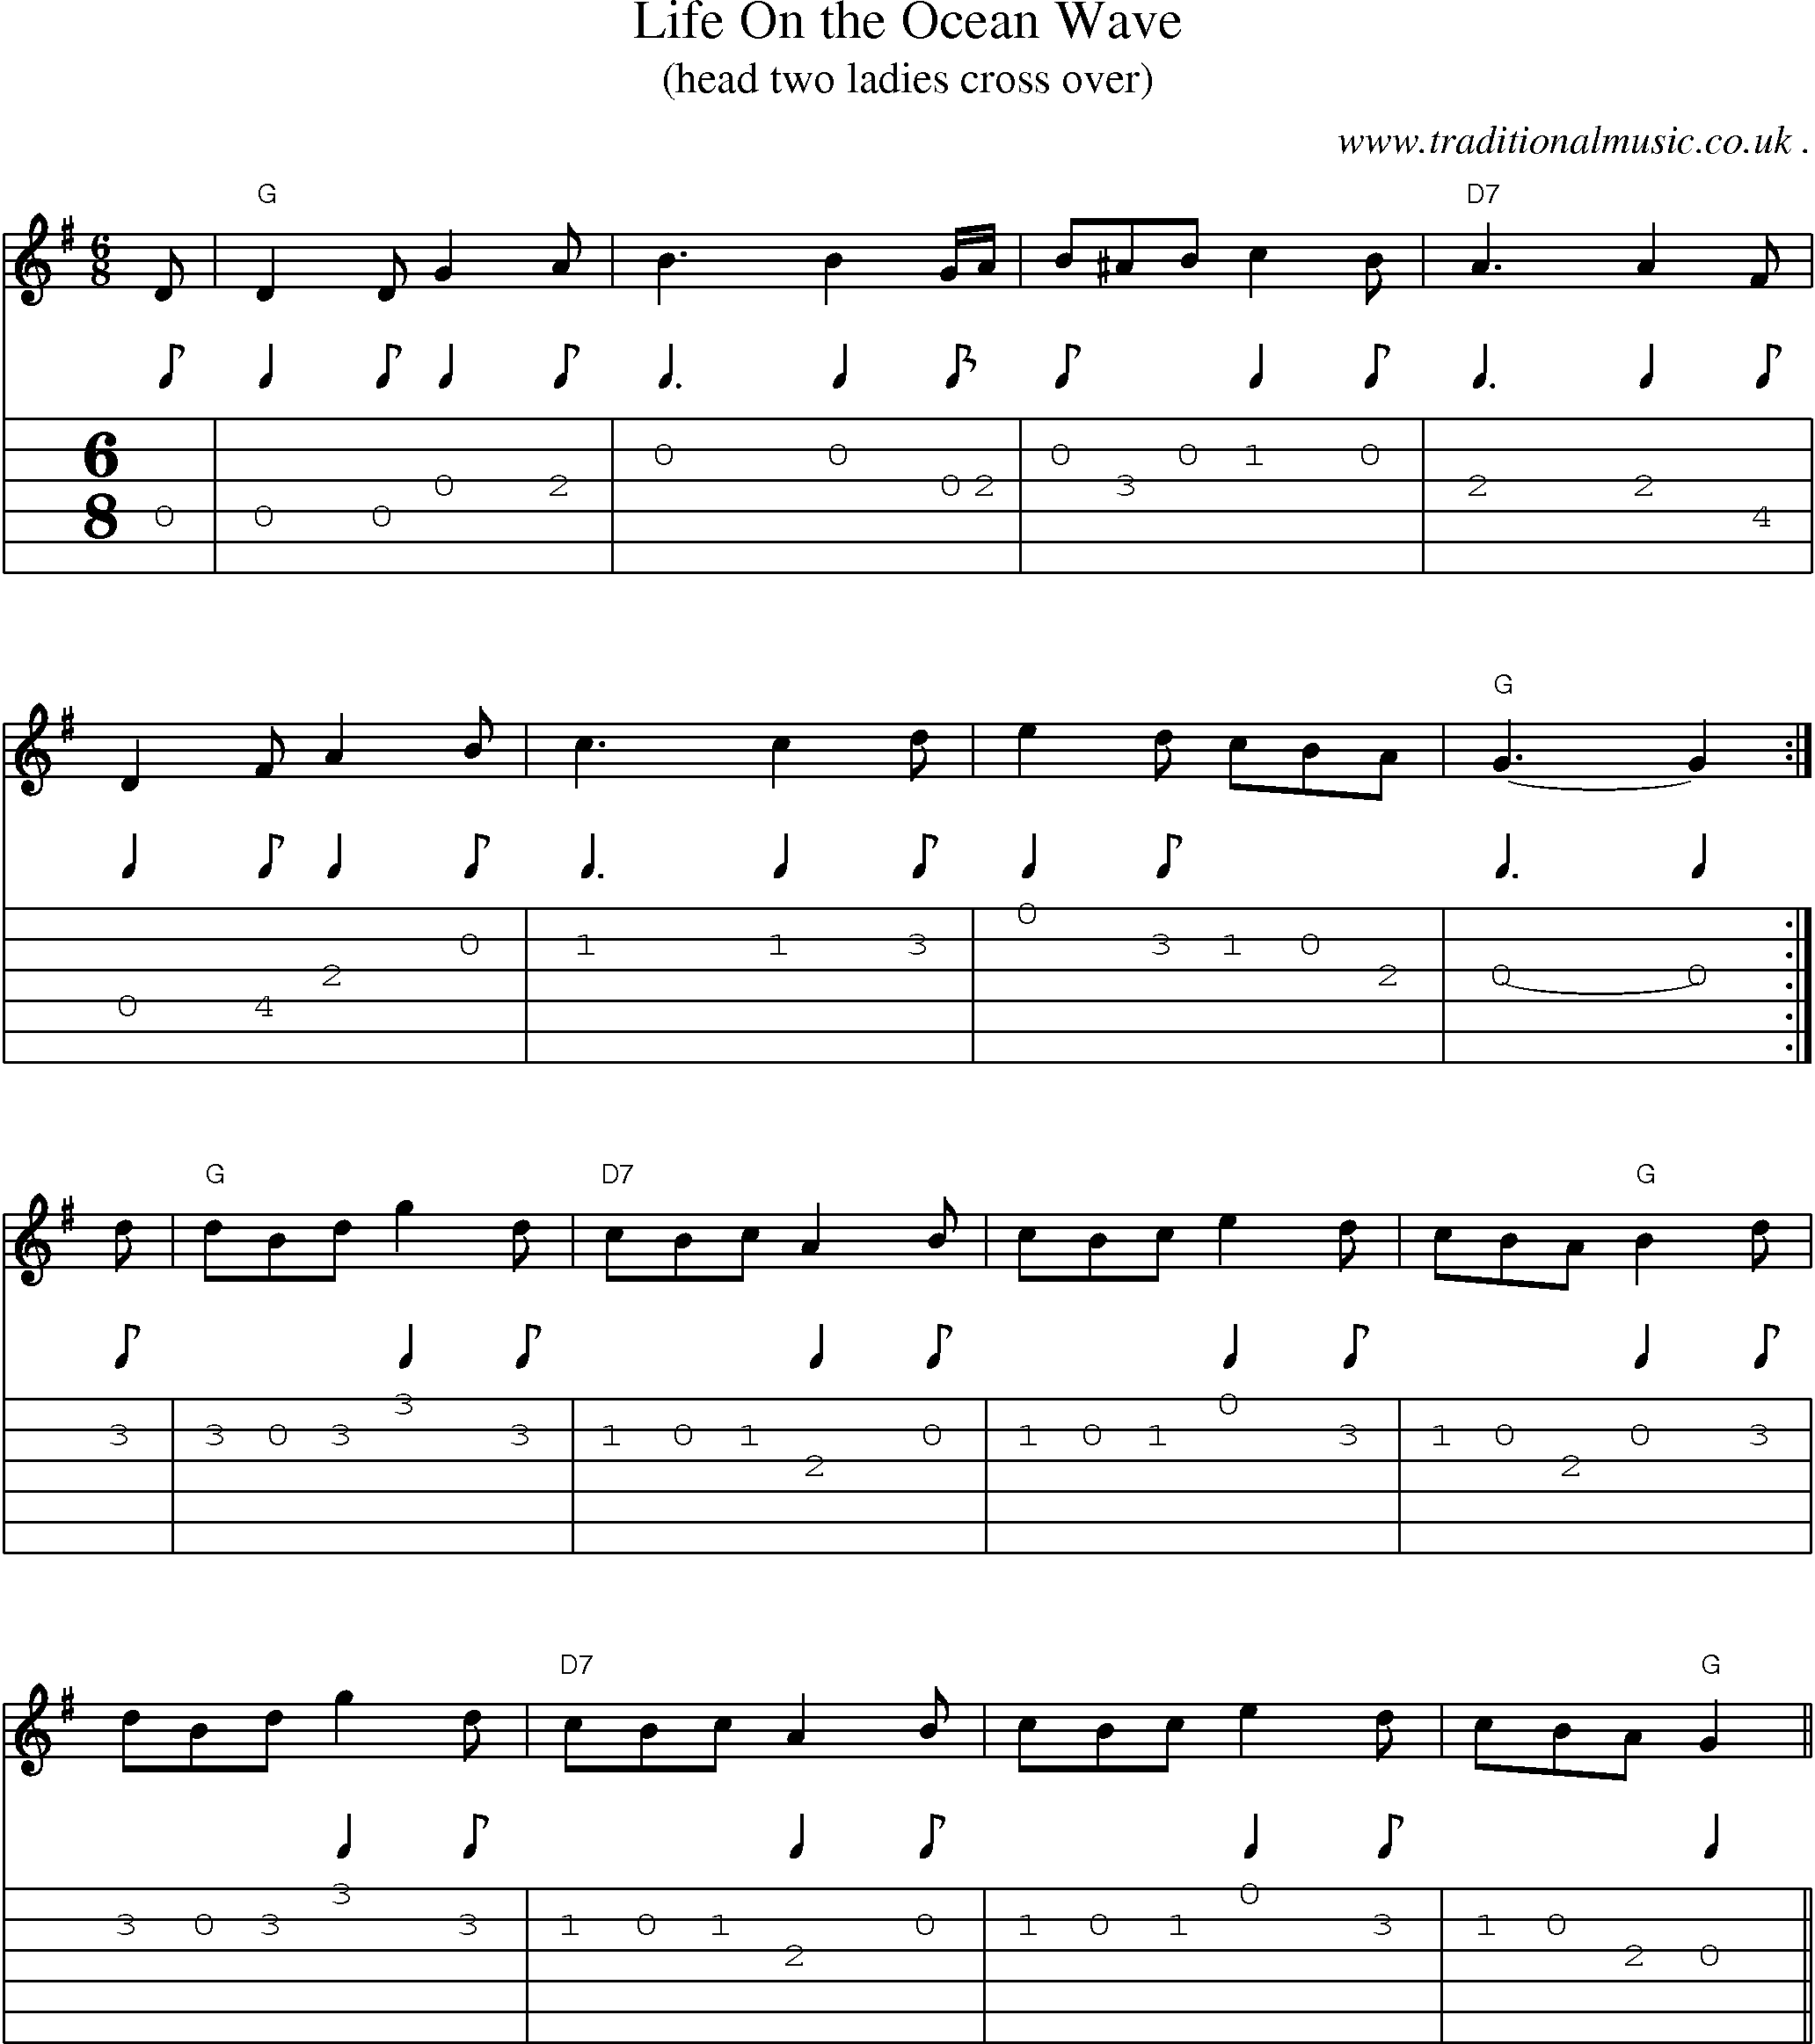 Common session tunes, Scores and Tabs for Guitar - Life On